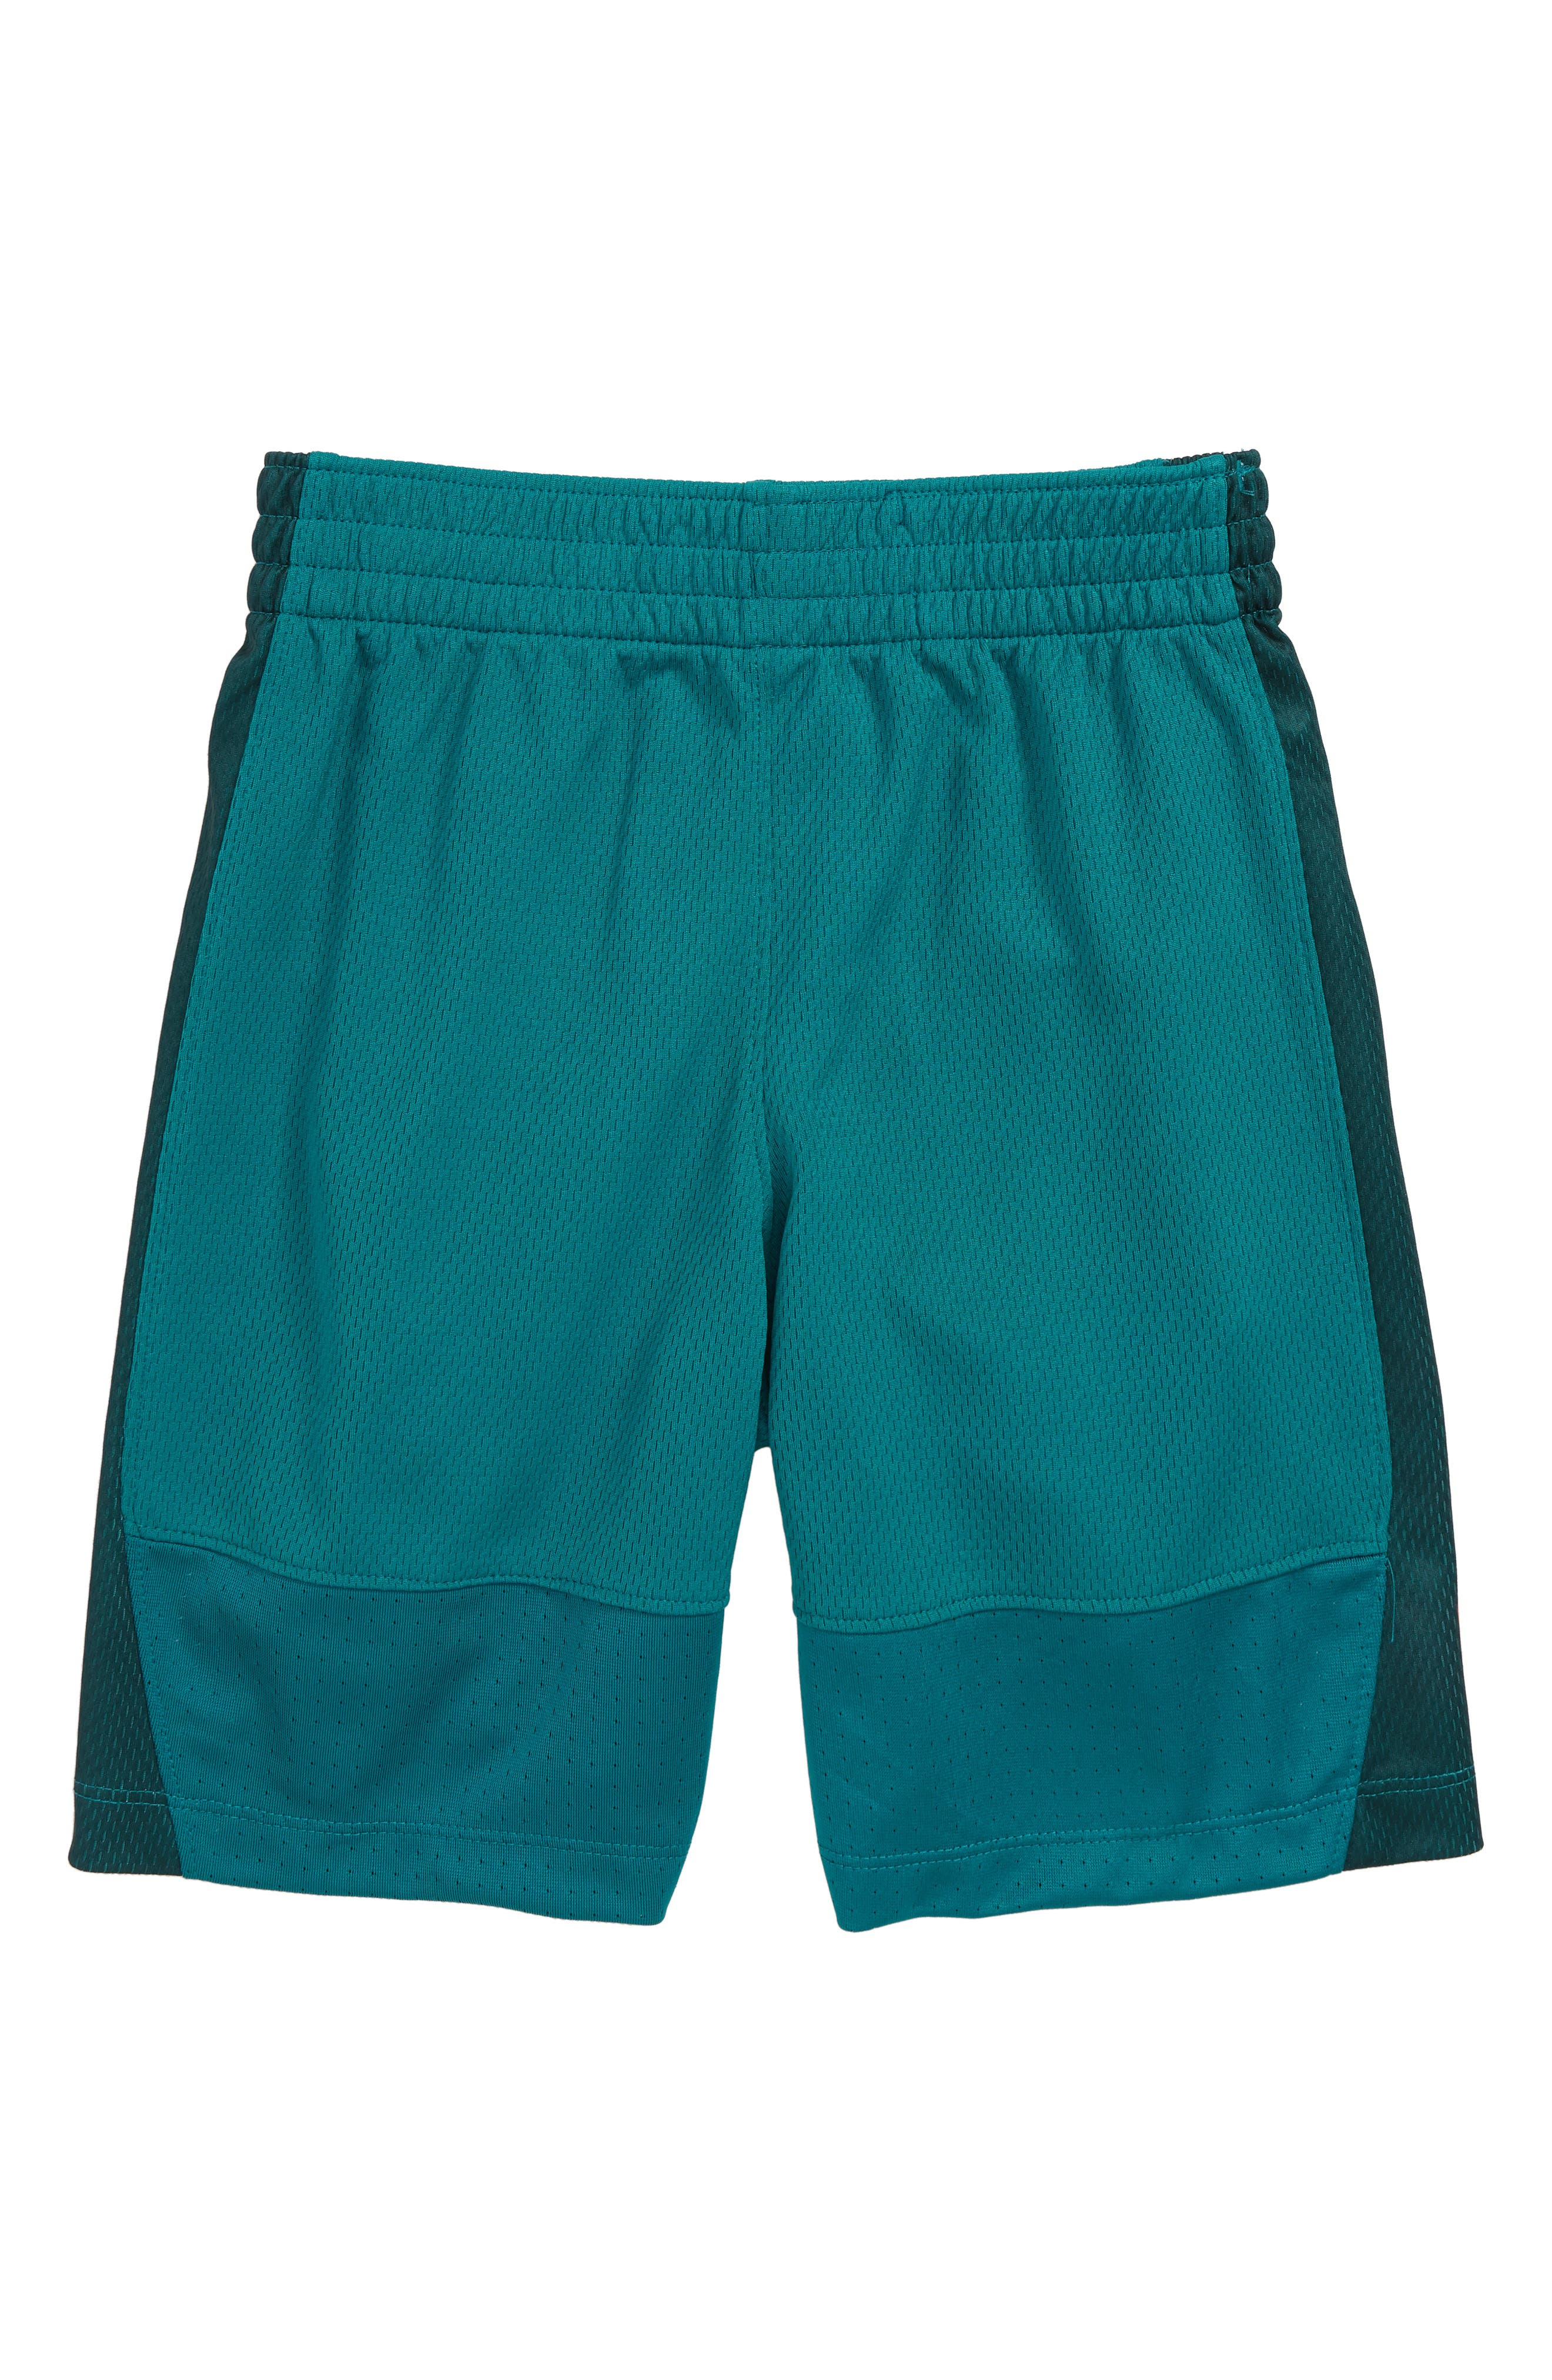 Dry Elite Basketball Shorts,                             Alternate thumbnail 2, color,                             GEODE TEAL/ CONE